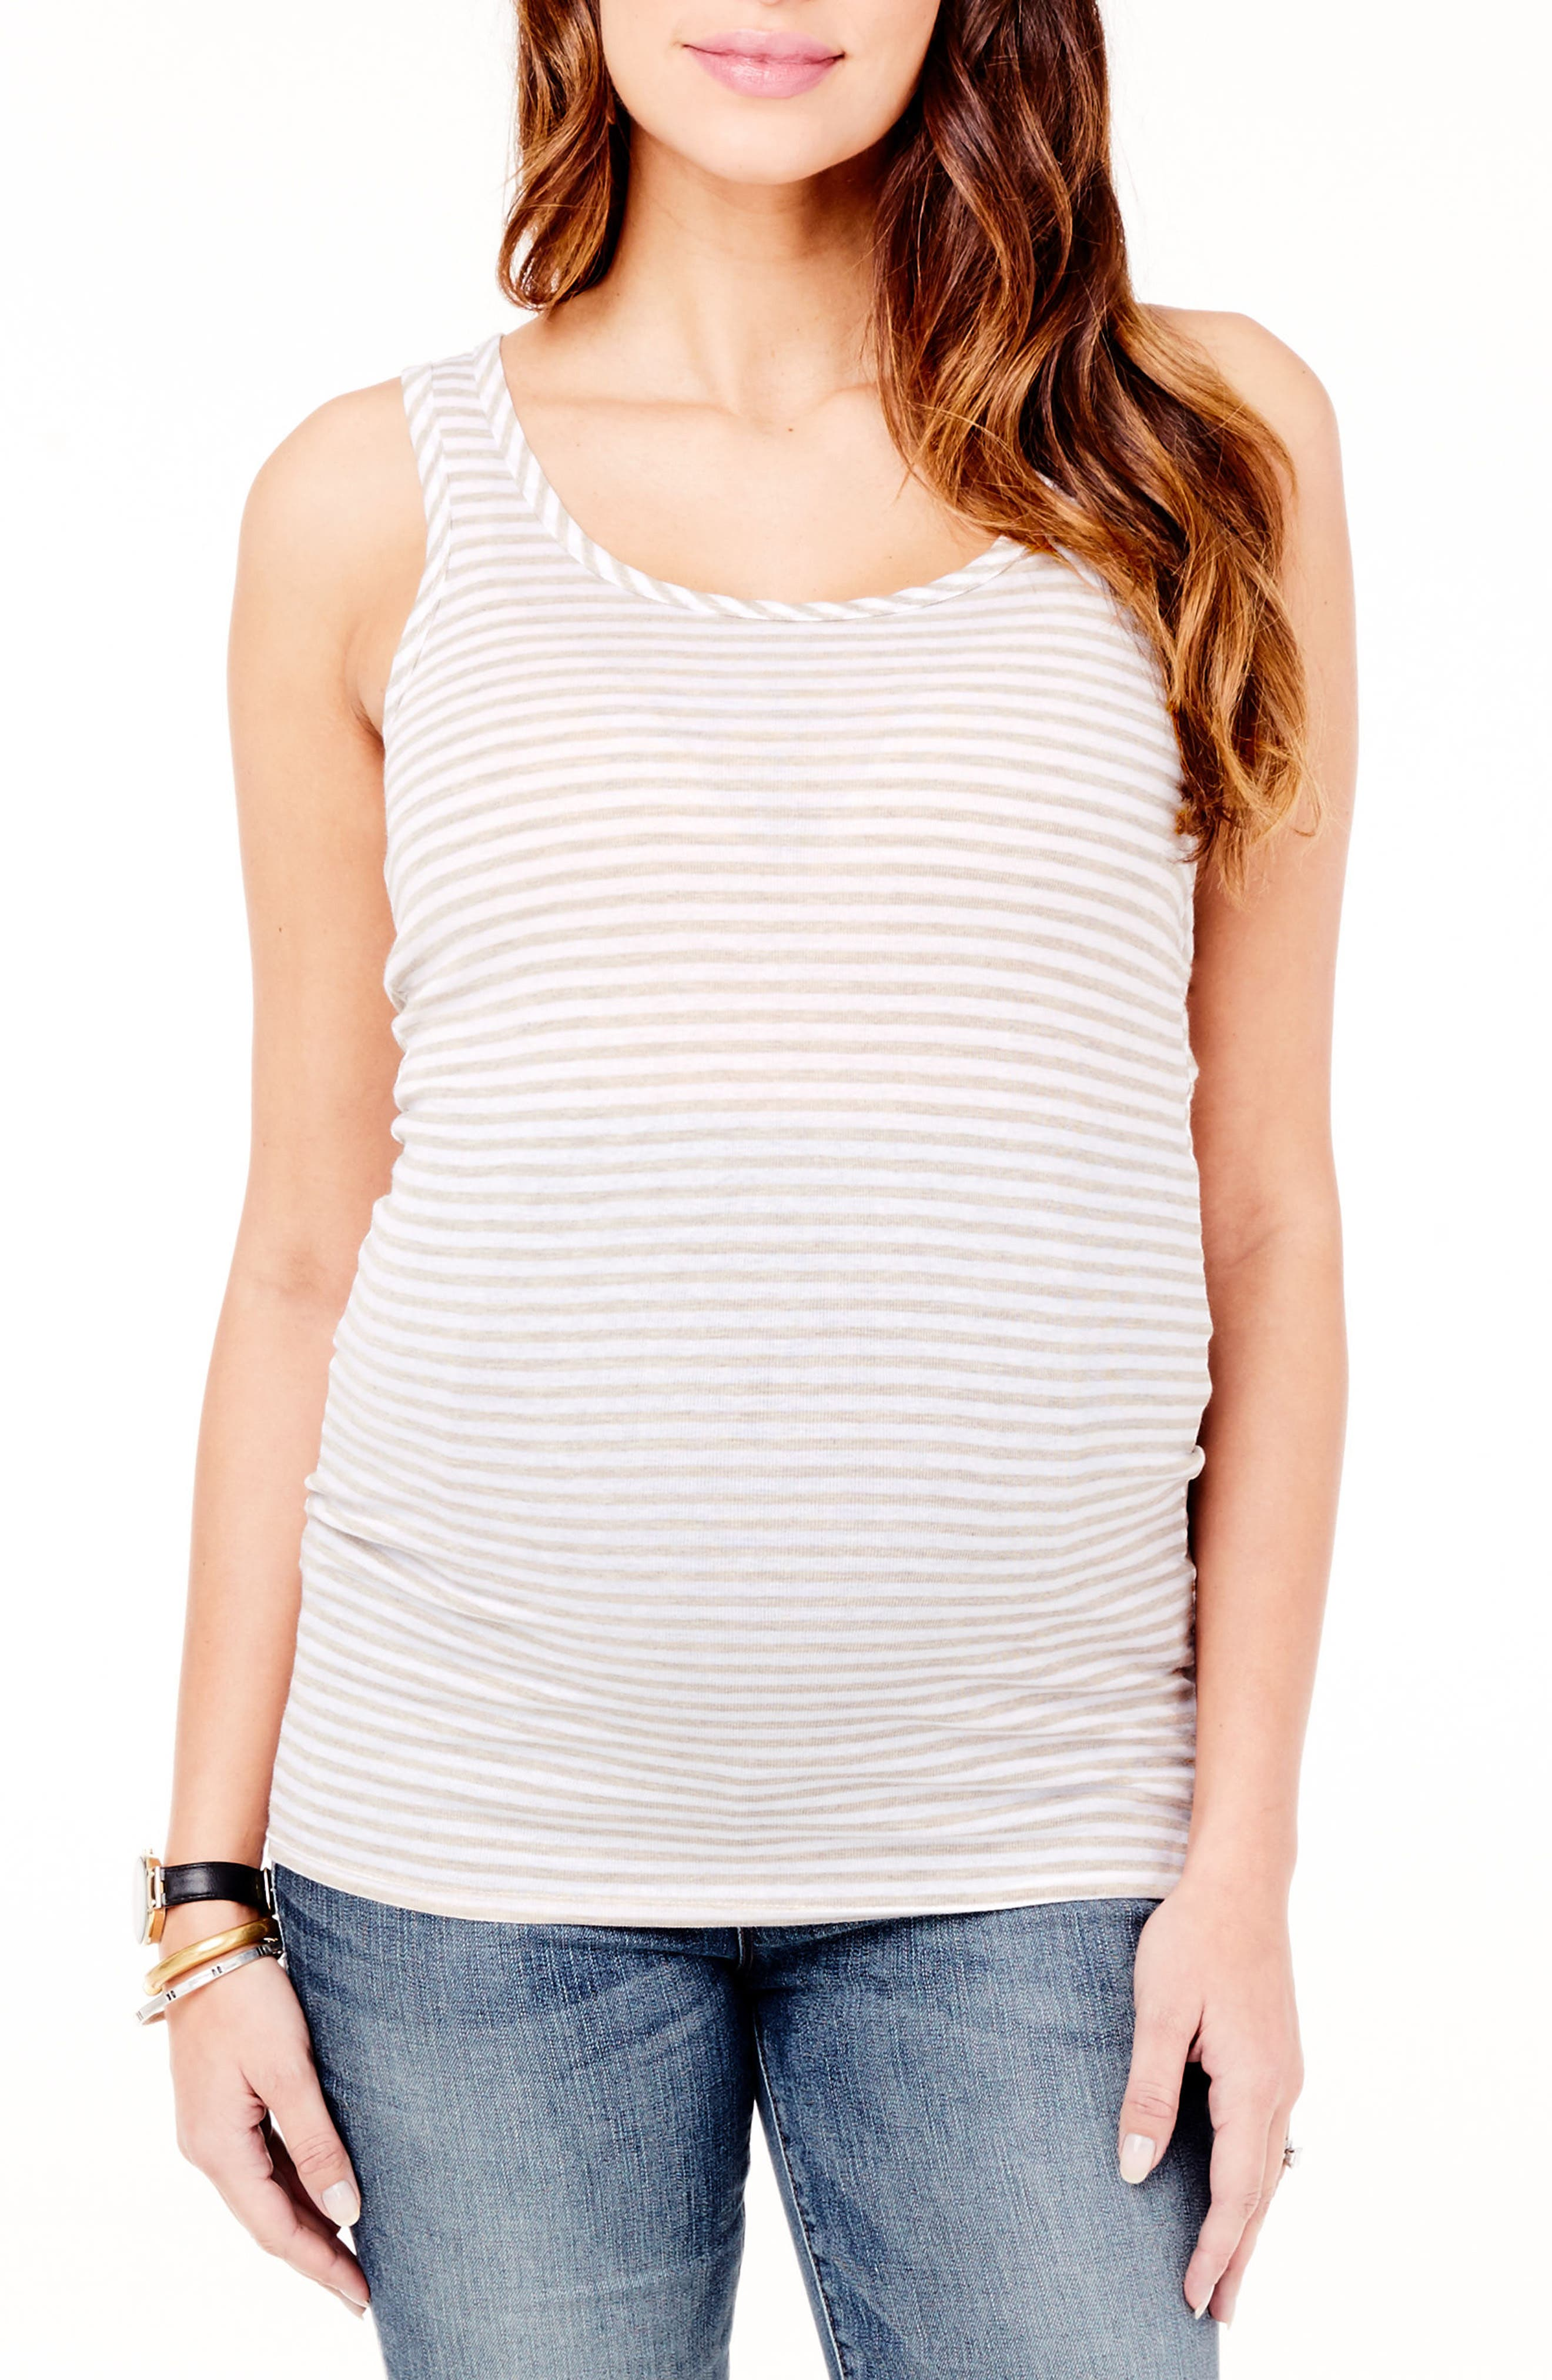 Sleeveless Maternity Top,                             Main thumbnail 1, color,                             Oatmeal Heather/White Strip